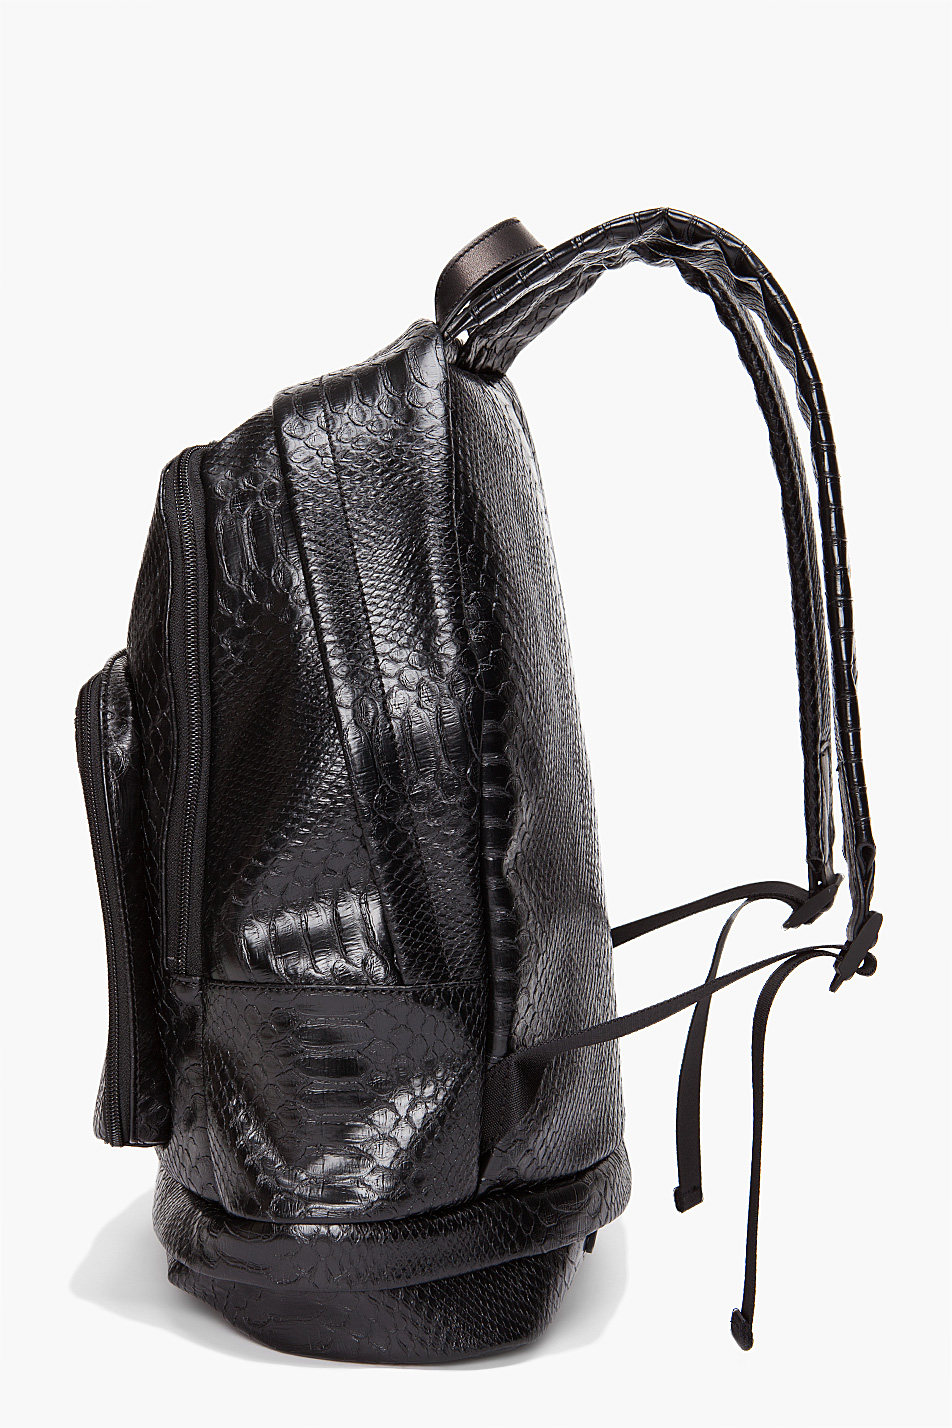 freshkings: Marc by Marc Jacobs Nifty Gifty Python Backpack: SHOP